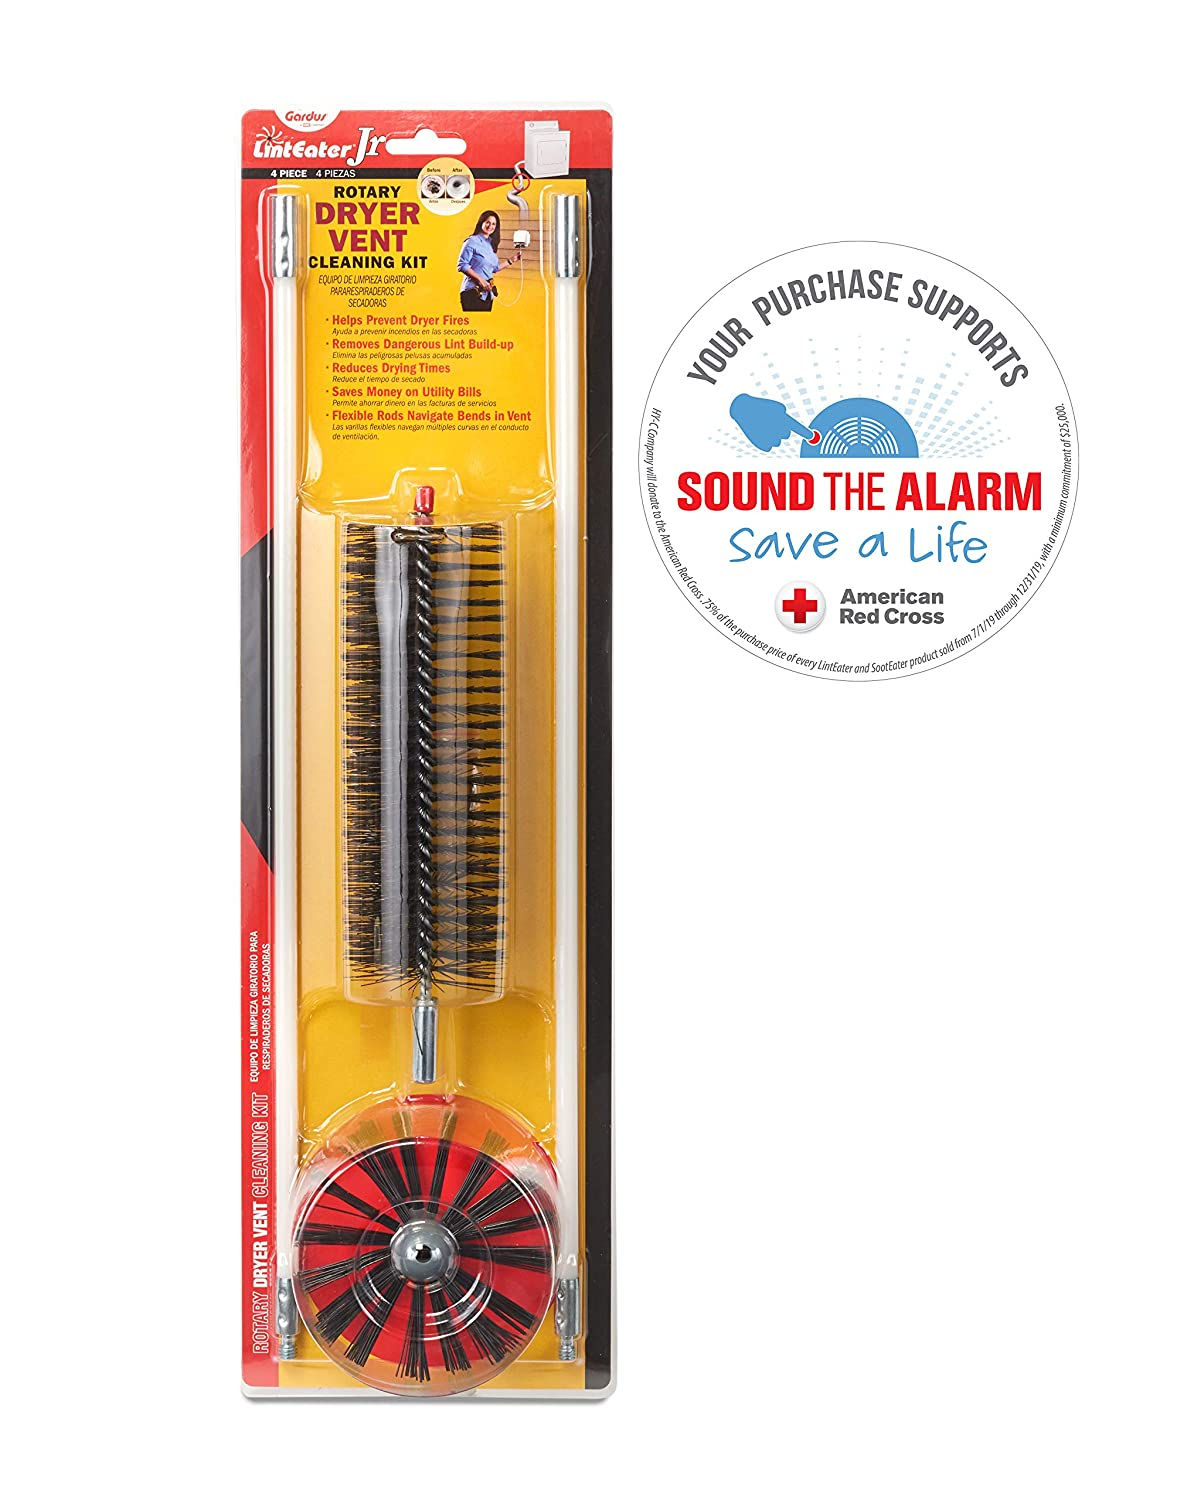 """Gardus RJR601 LintEater Junior Rotary Dryer Vent Cleaning Kit, Removes Lint & Cleans Duct Up to 6' with 2 Flexible 18"""" Rods, Includes Bonus Lint Trap Brush"""